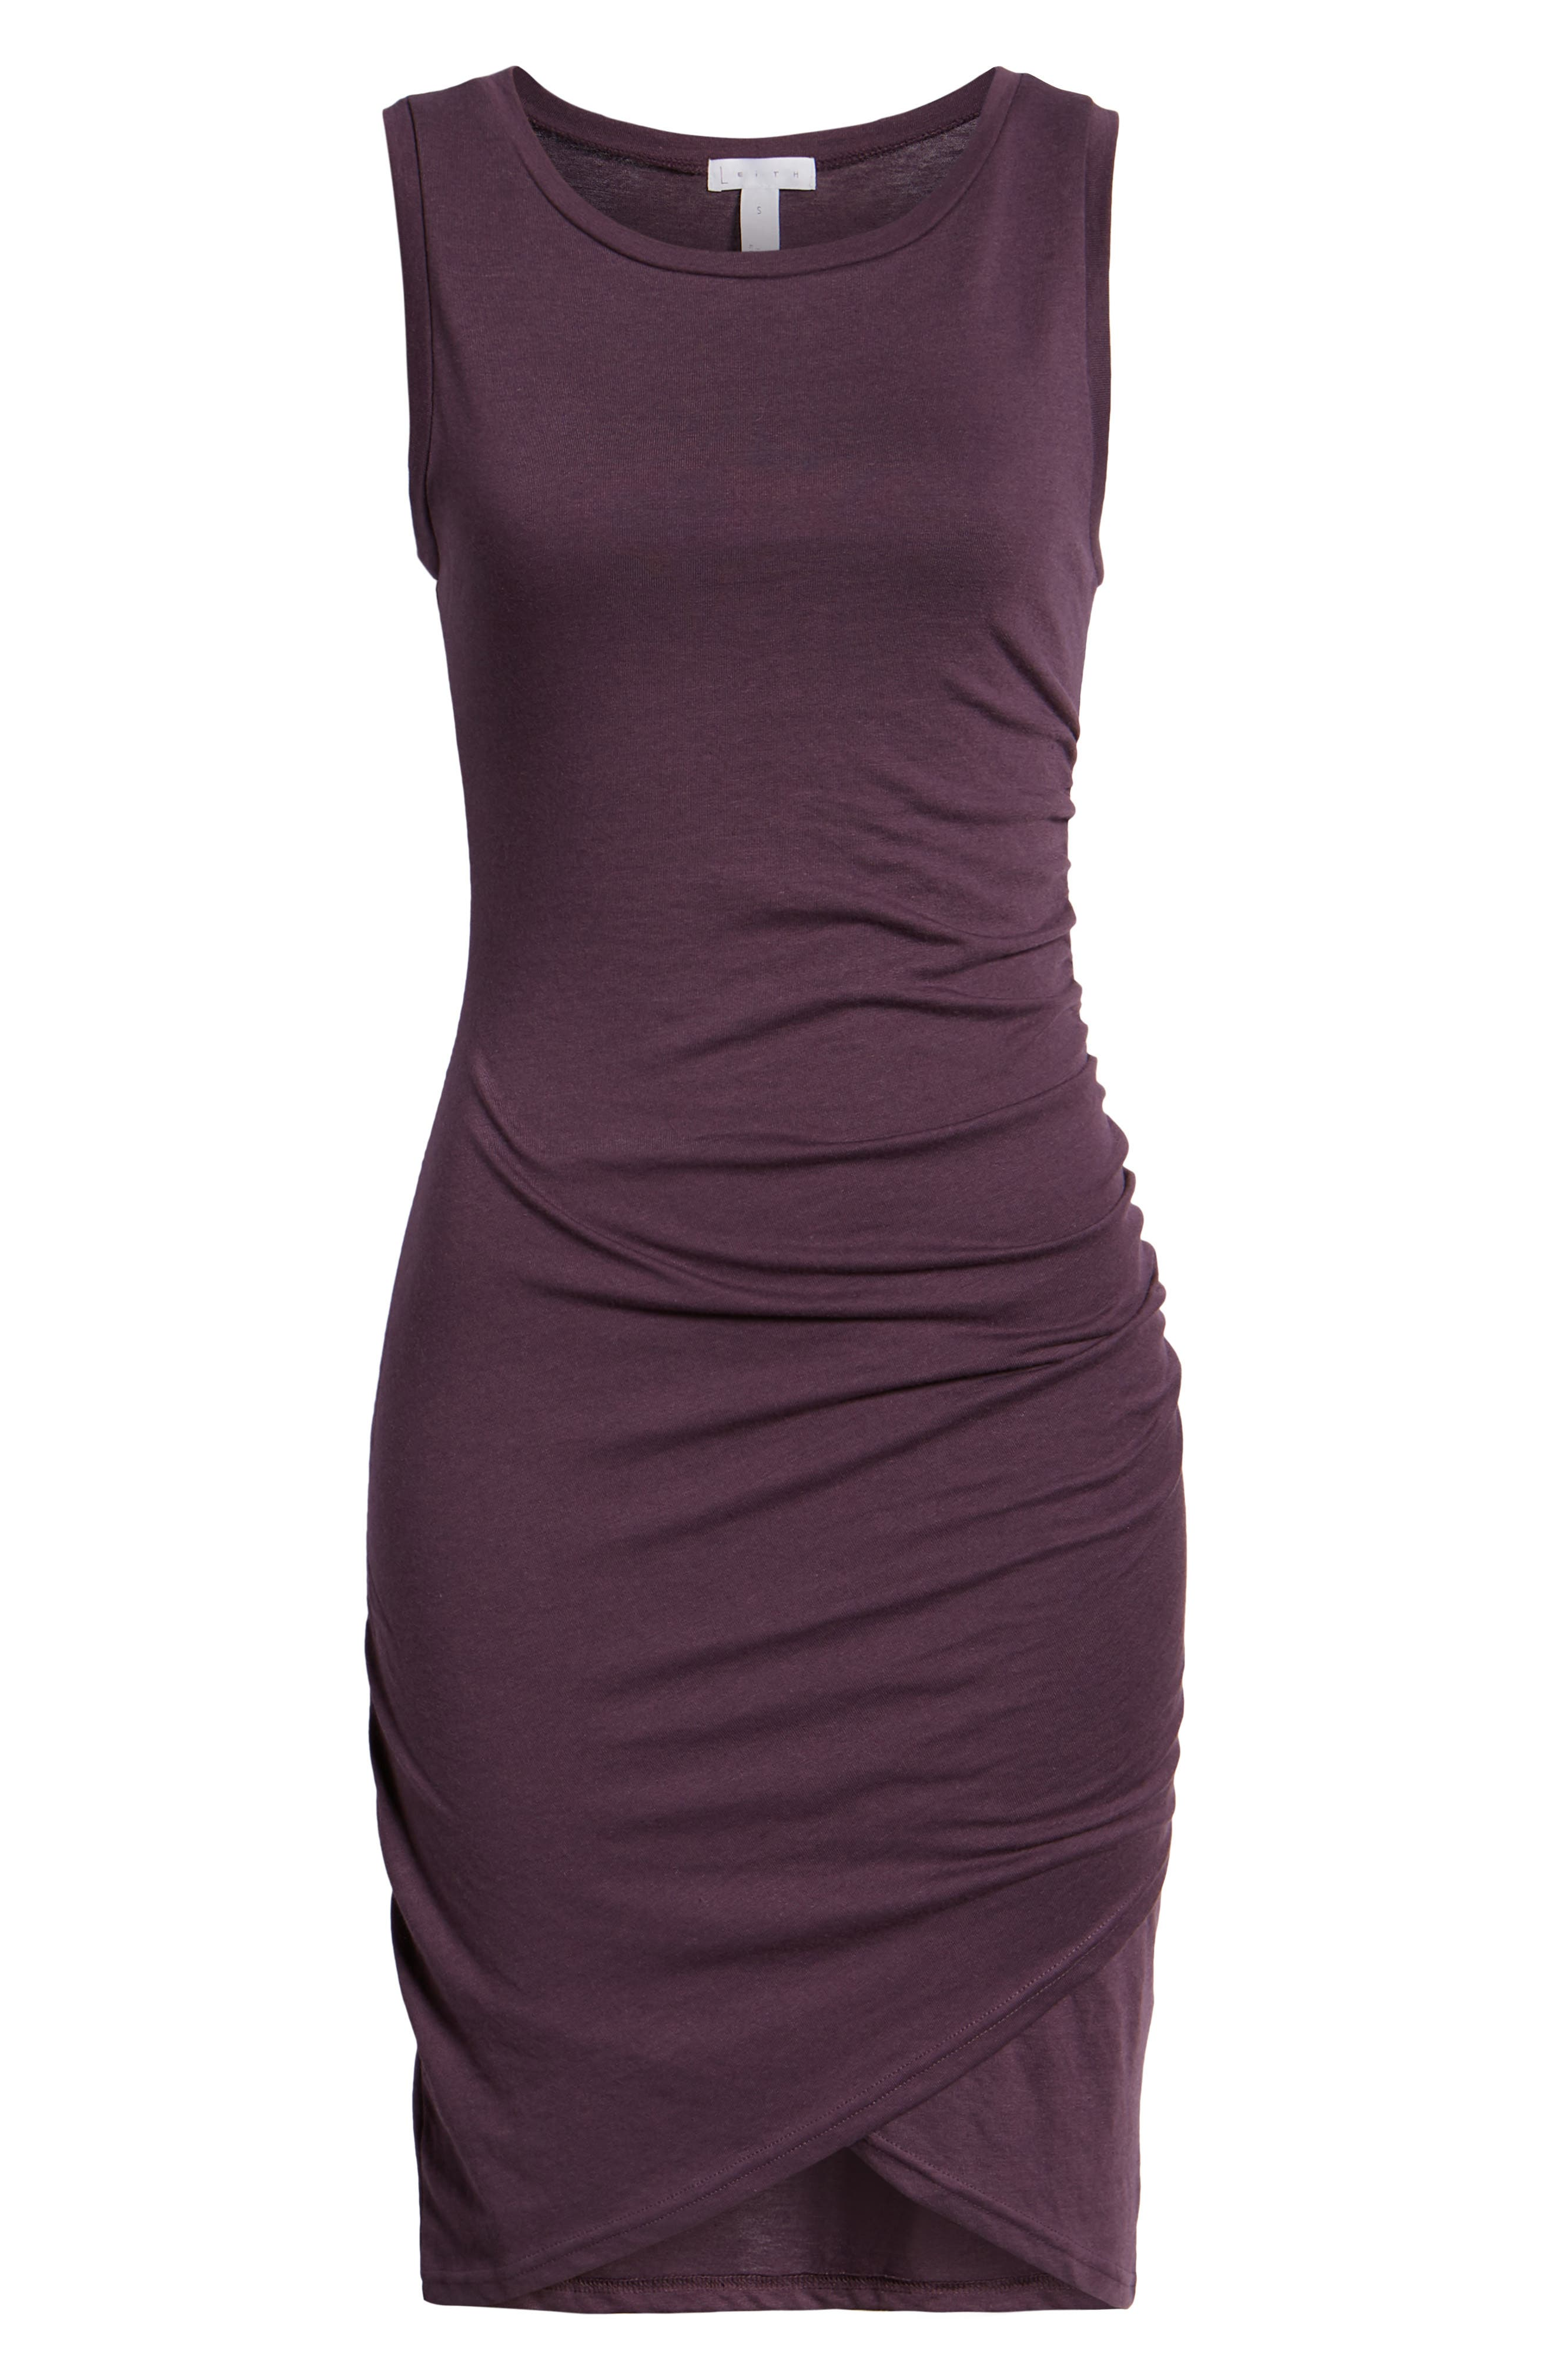 Ruched Body-Con Tank Dress,                             Alternate thumbnail 7, color,                             503